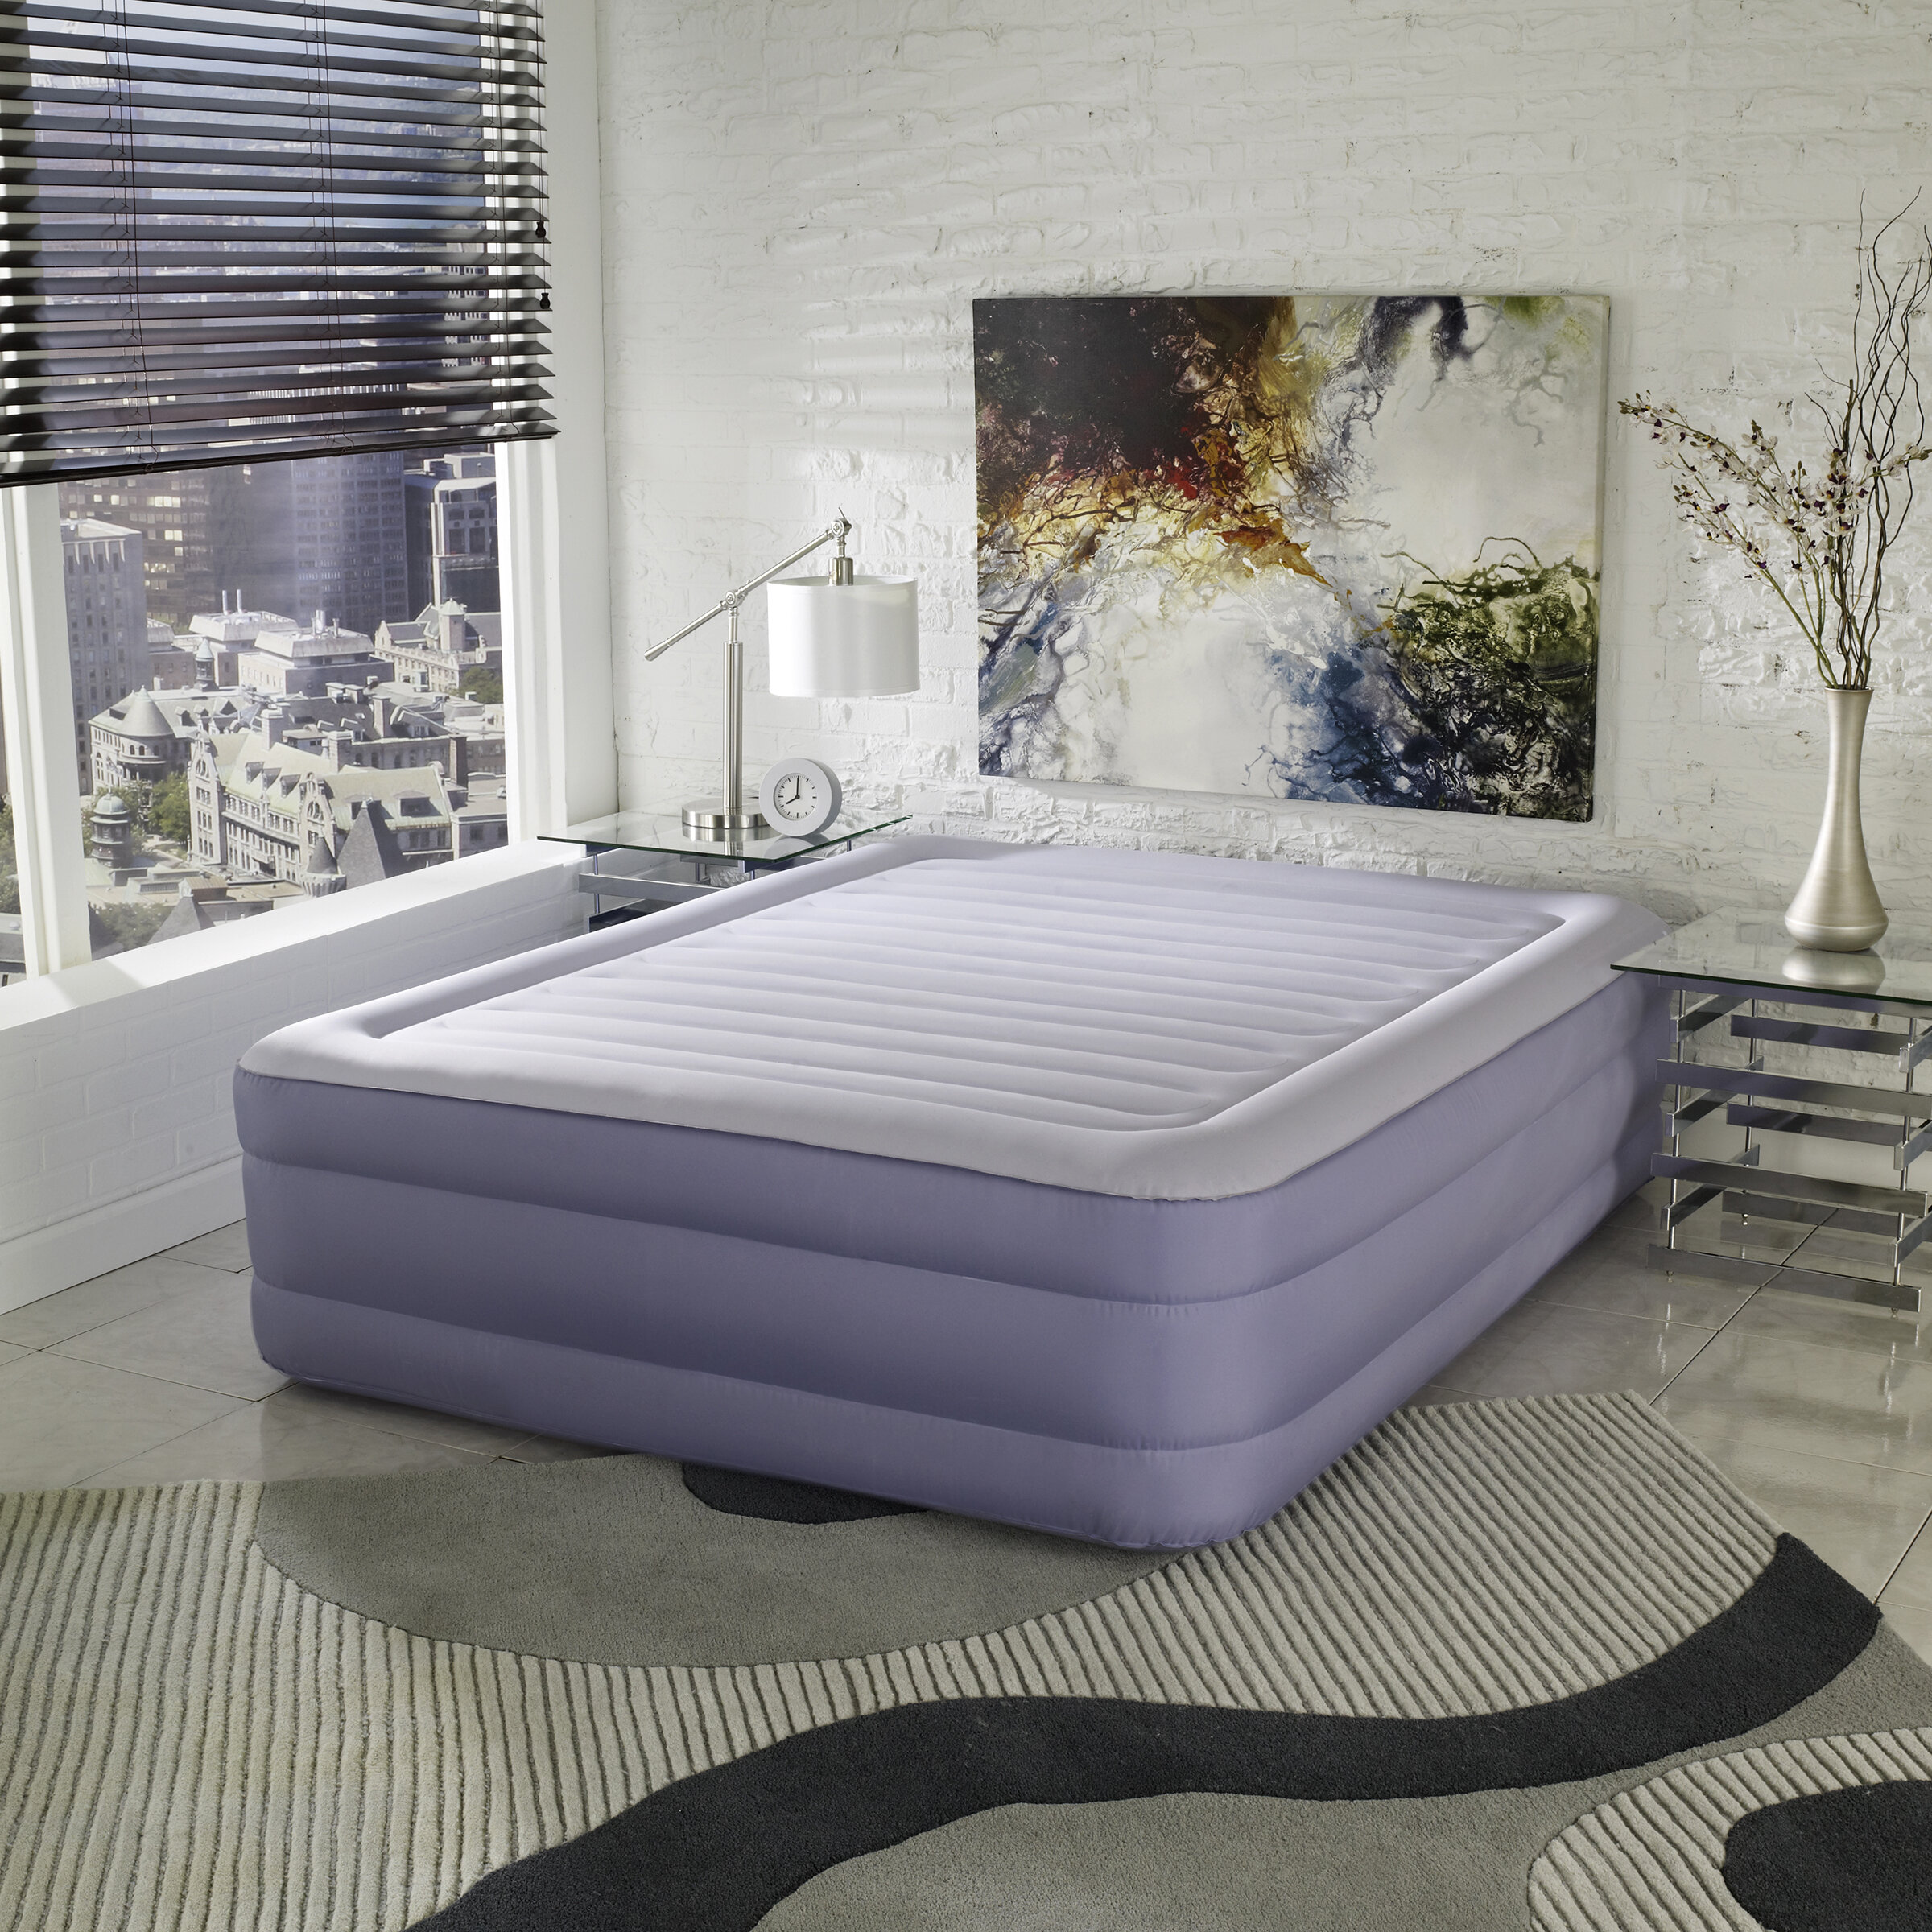 built queen walmart in with ip com electric intex mattress air downy raised pump airbed